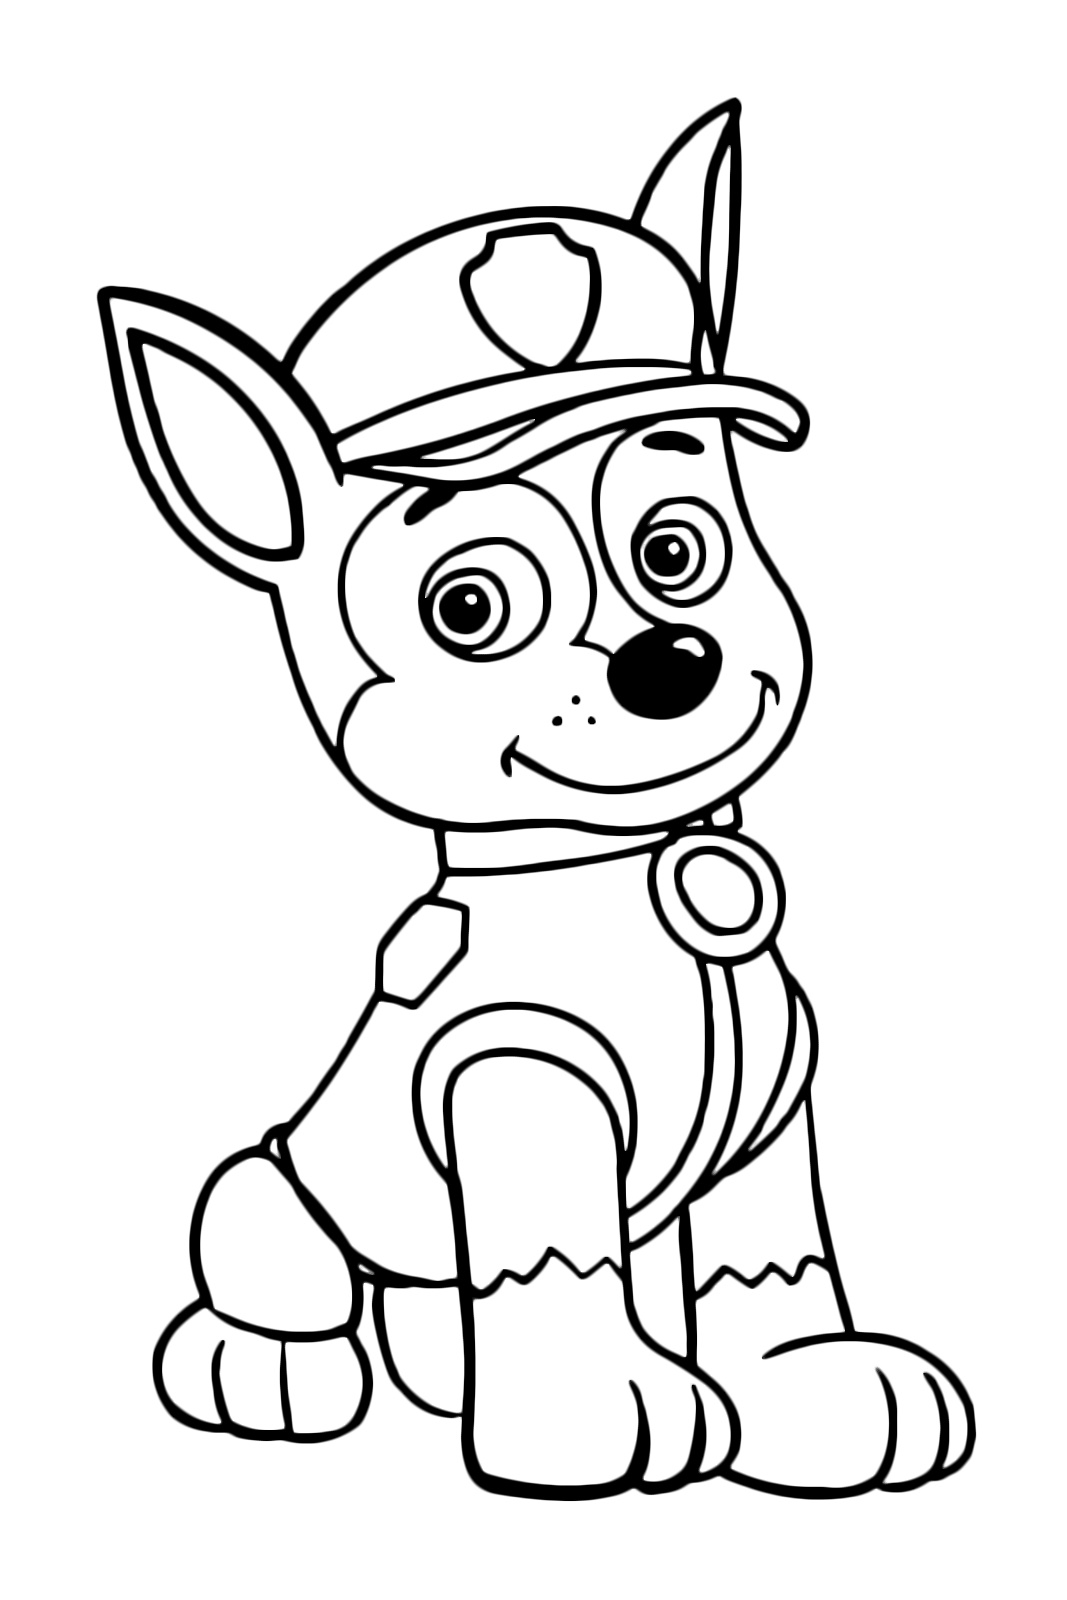 paw patrol for coloring free paw patrol coloring pages happiness is homemade for patrol coloring paw